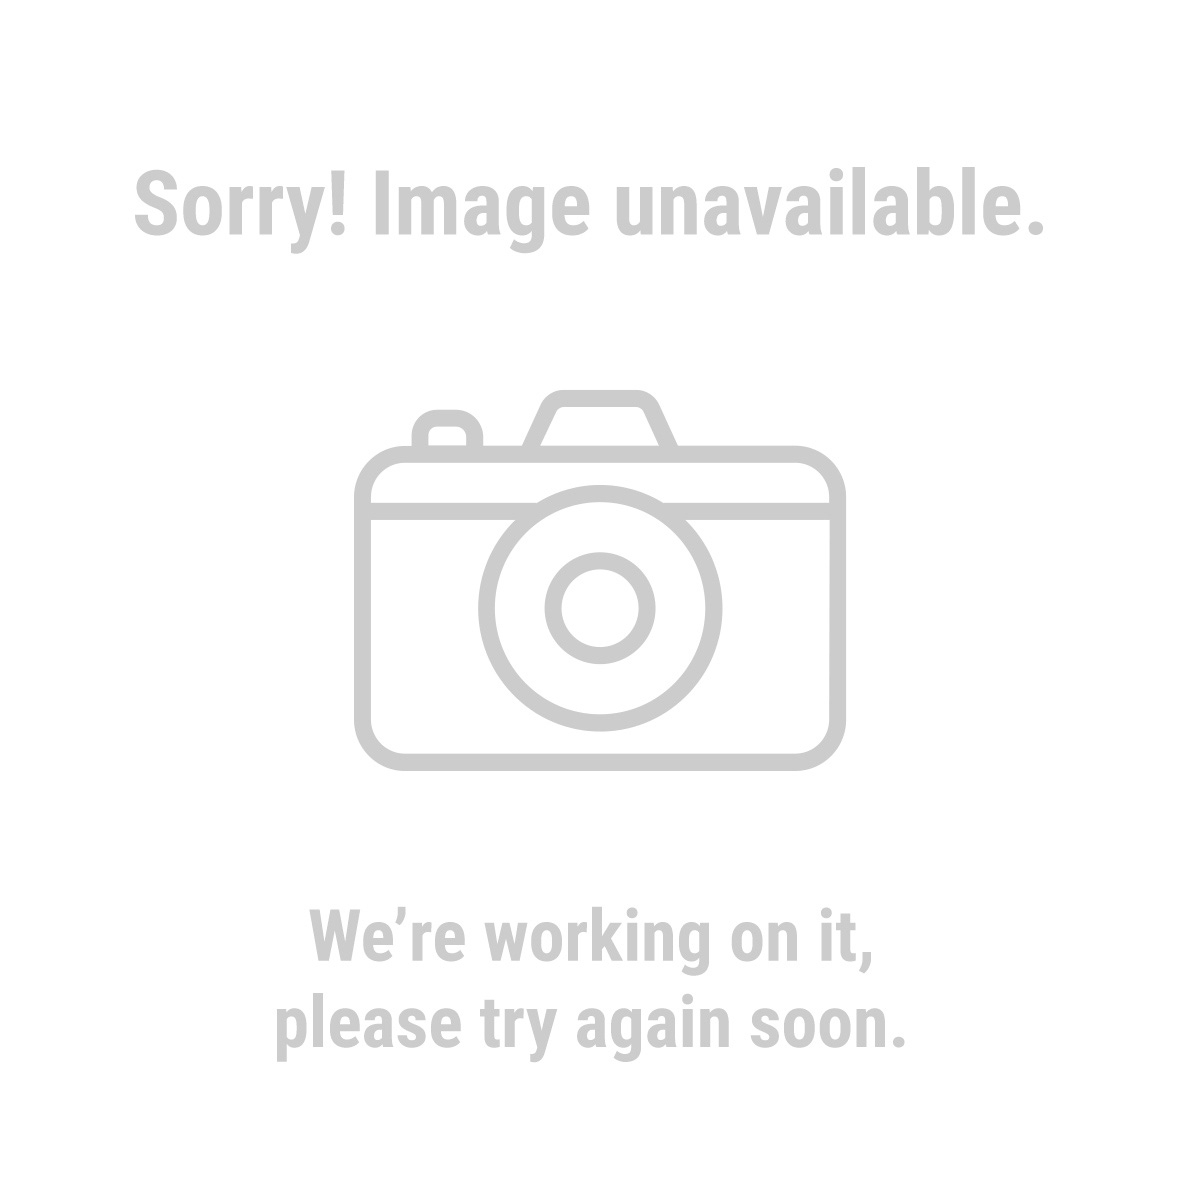 Western Safety 47518 Particulate Respirator with Valve